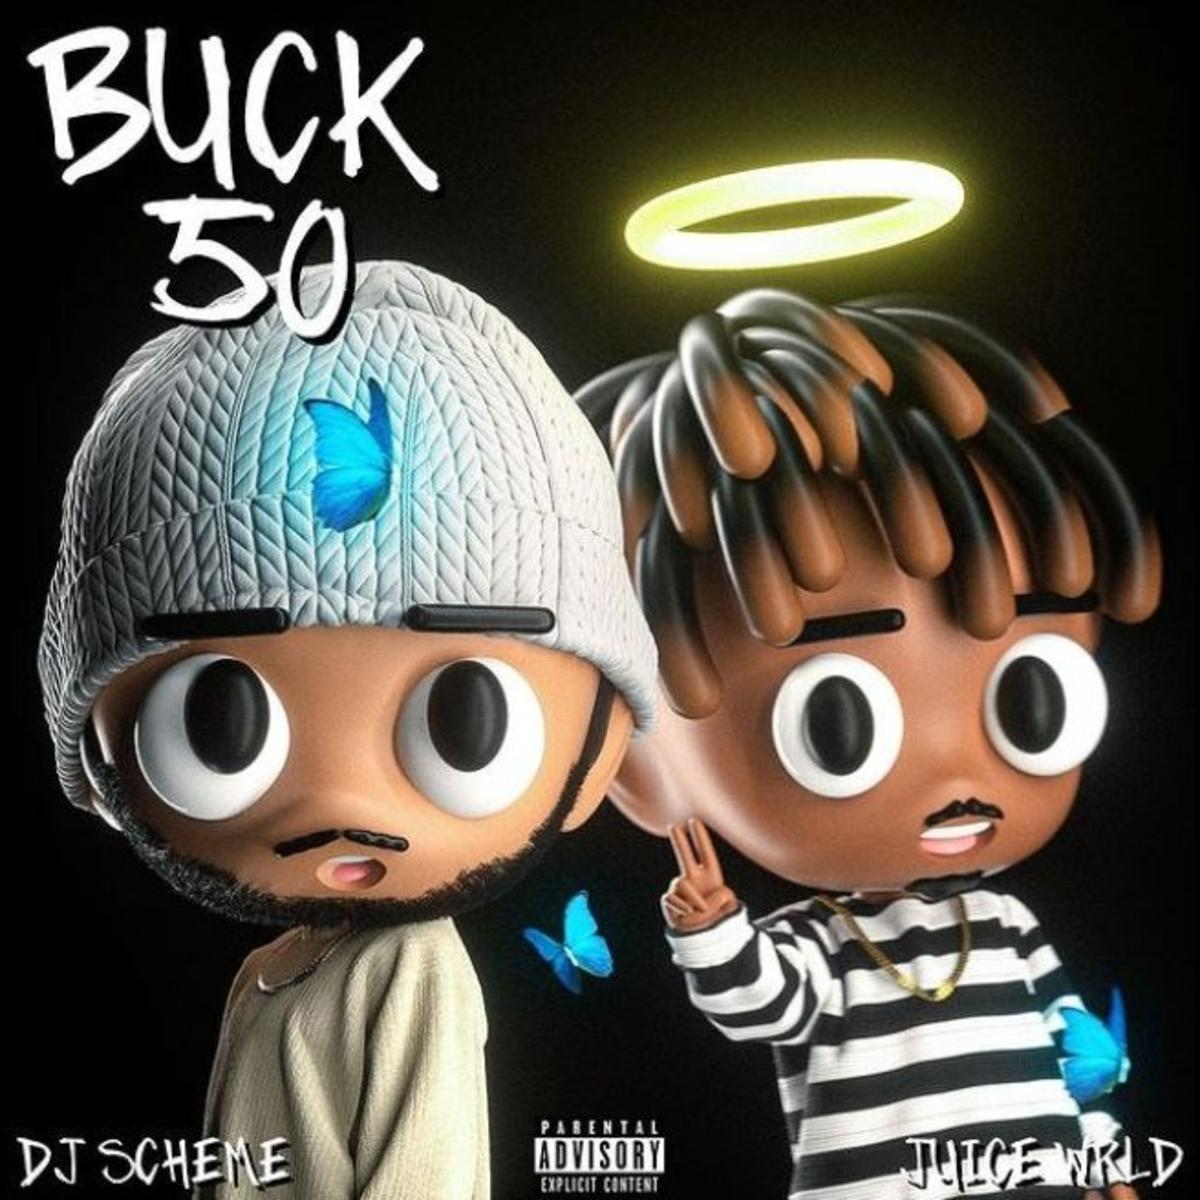 DJ Scheme - Buck 50 Ft Juice WRLD